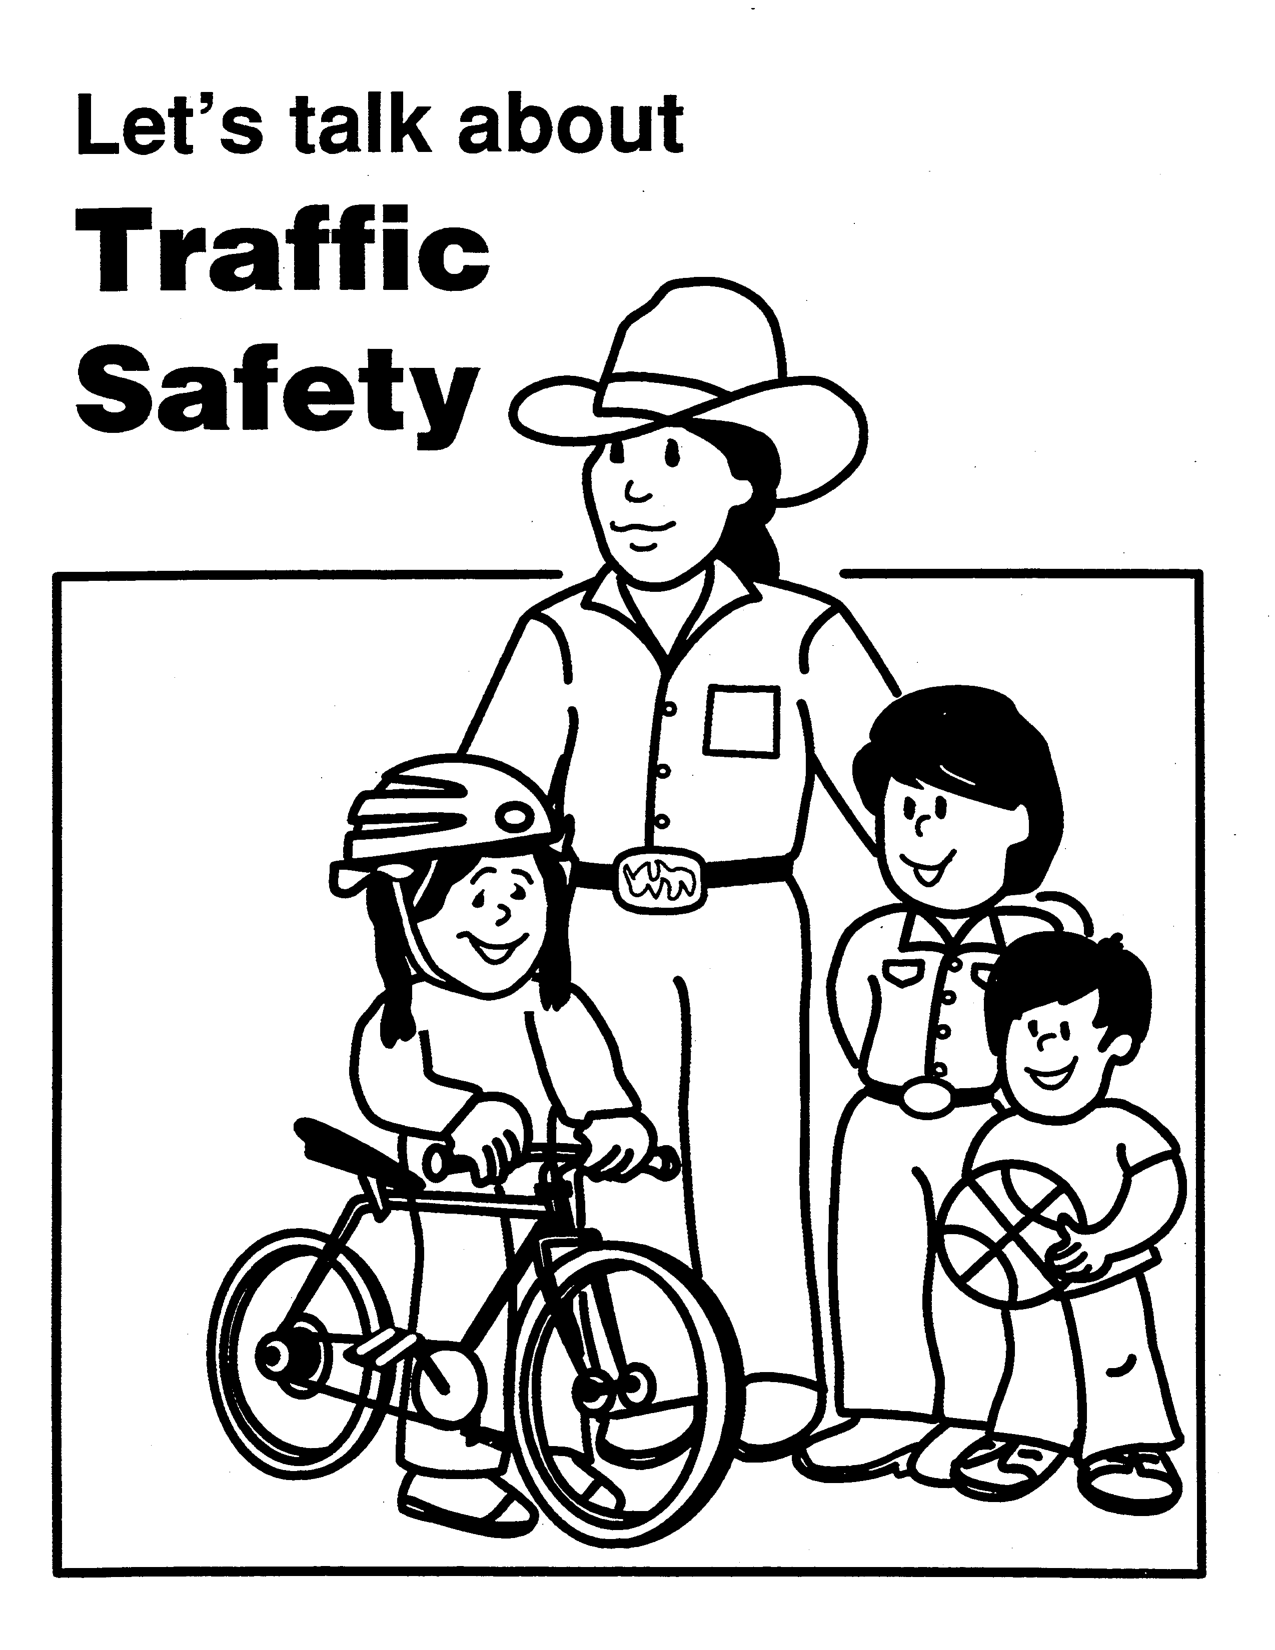 Colouring sheets for road safety - 6 Pics Of Traffic Safety Coloring Pages Road Safety Coloring